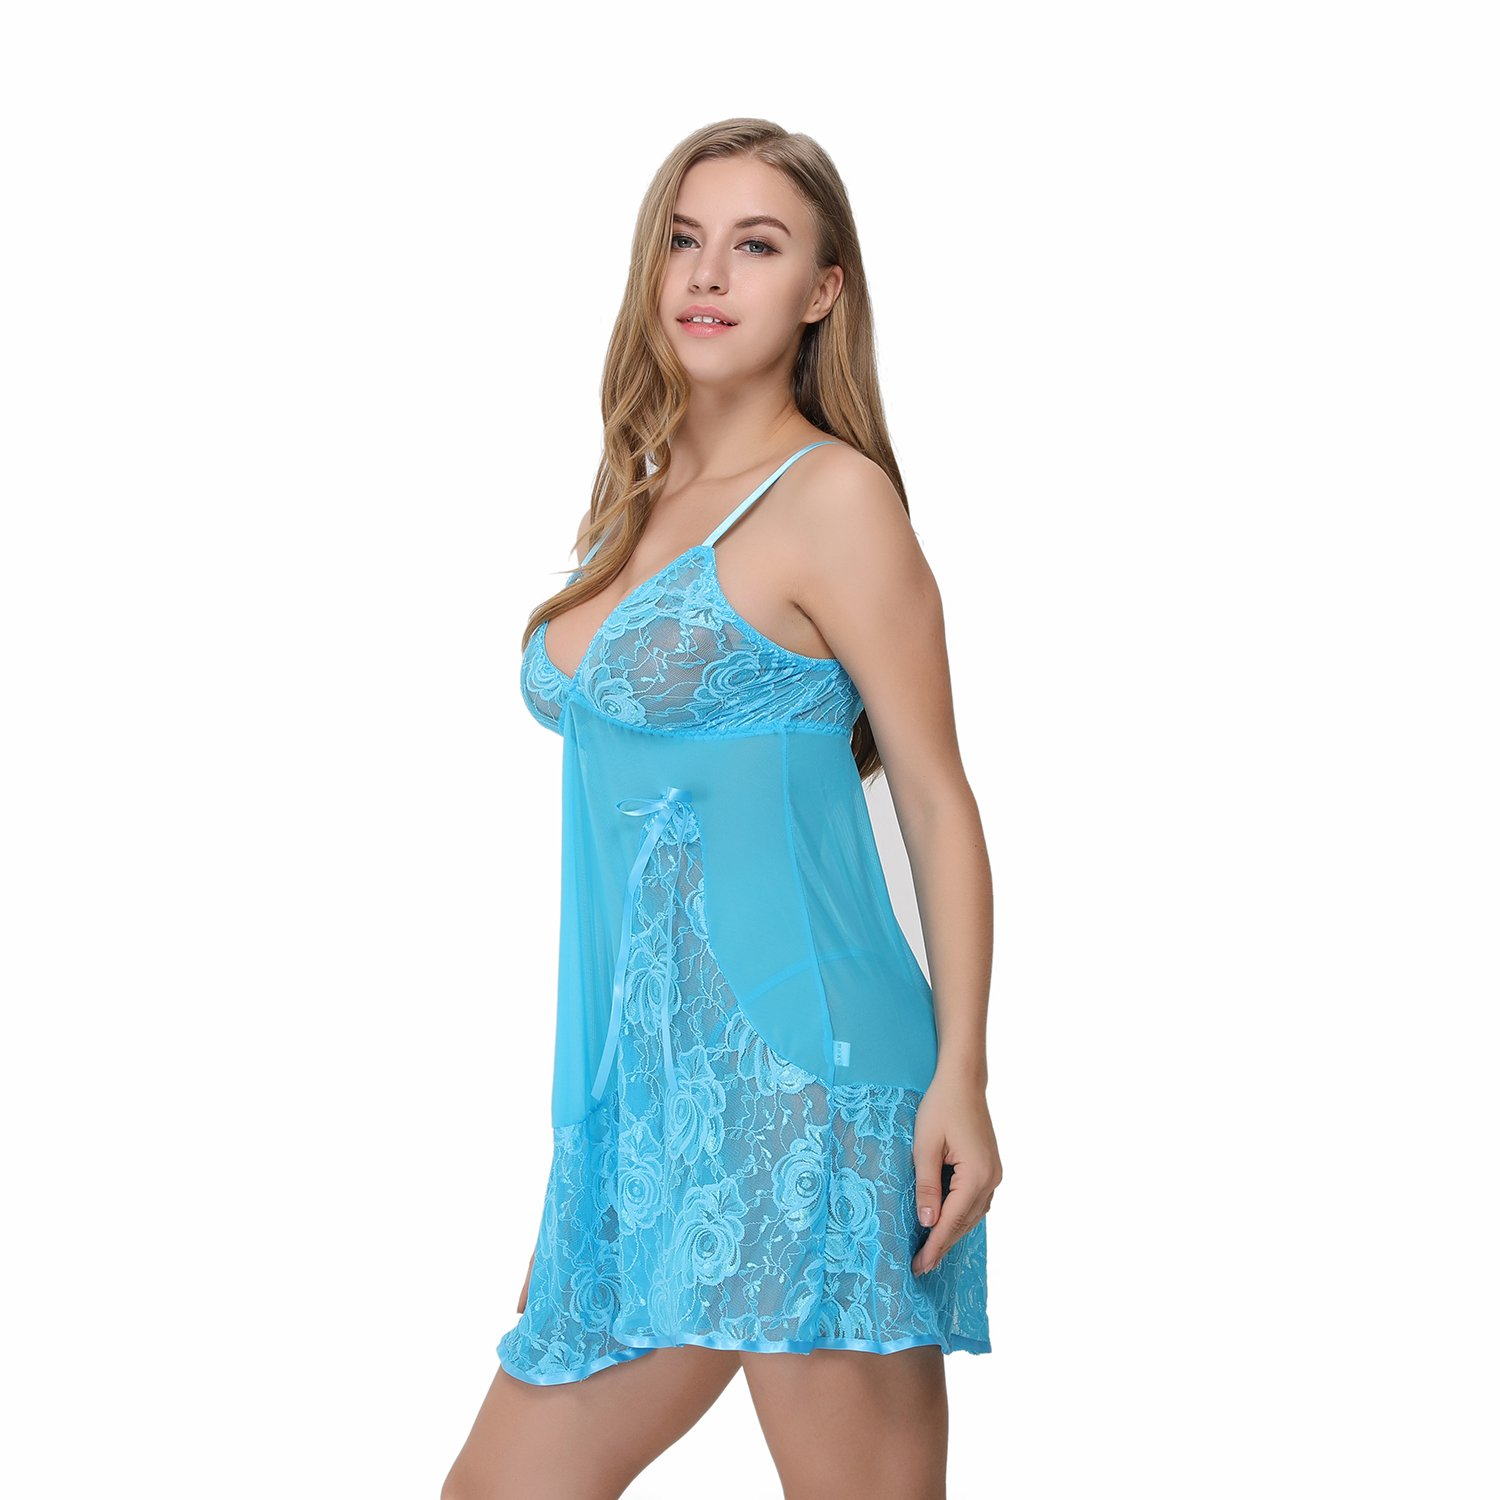 Advoult Women Babydolls Sexy Lingerie Nighty Lace Sleepwear Mesh Chemise Outfits by Advoult (Image #3)